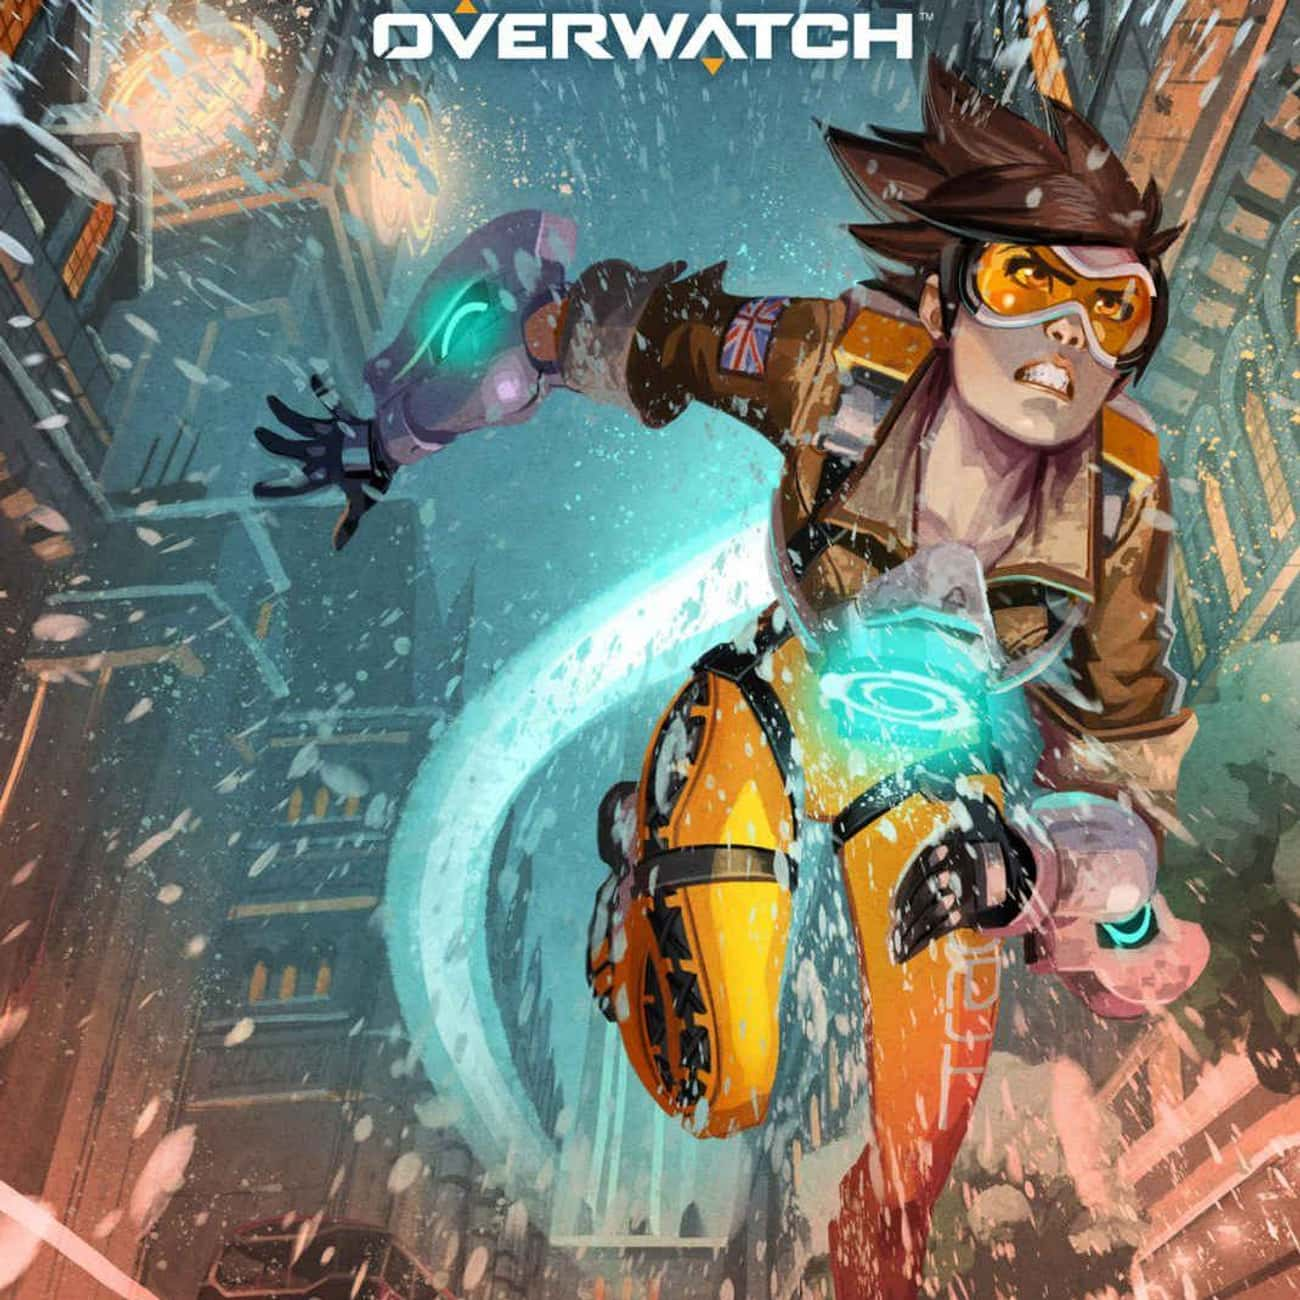 Reflections is listed (or ranked) 4 on the list The Best Overwatch Comics, Ranked